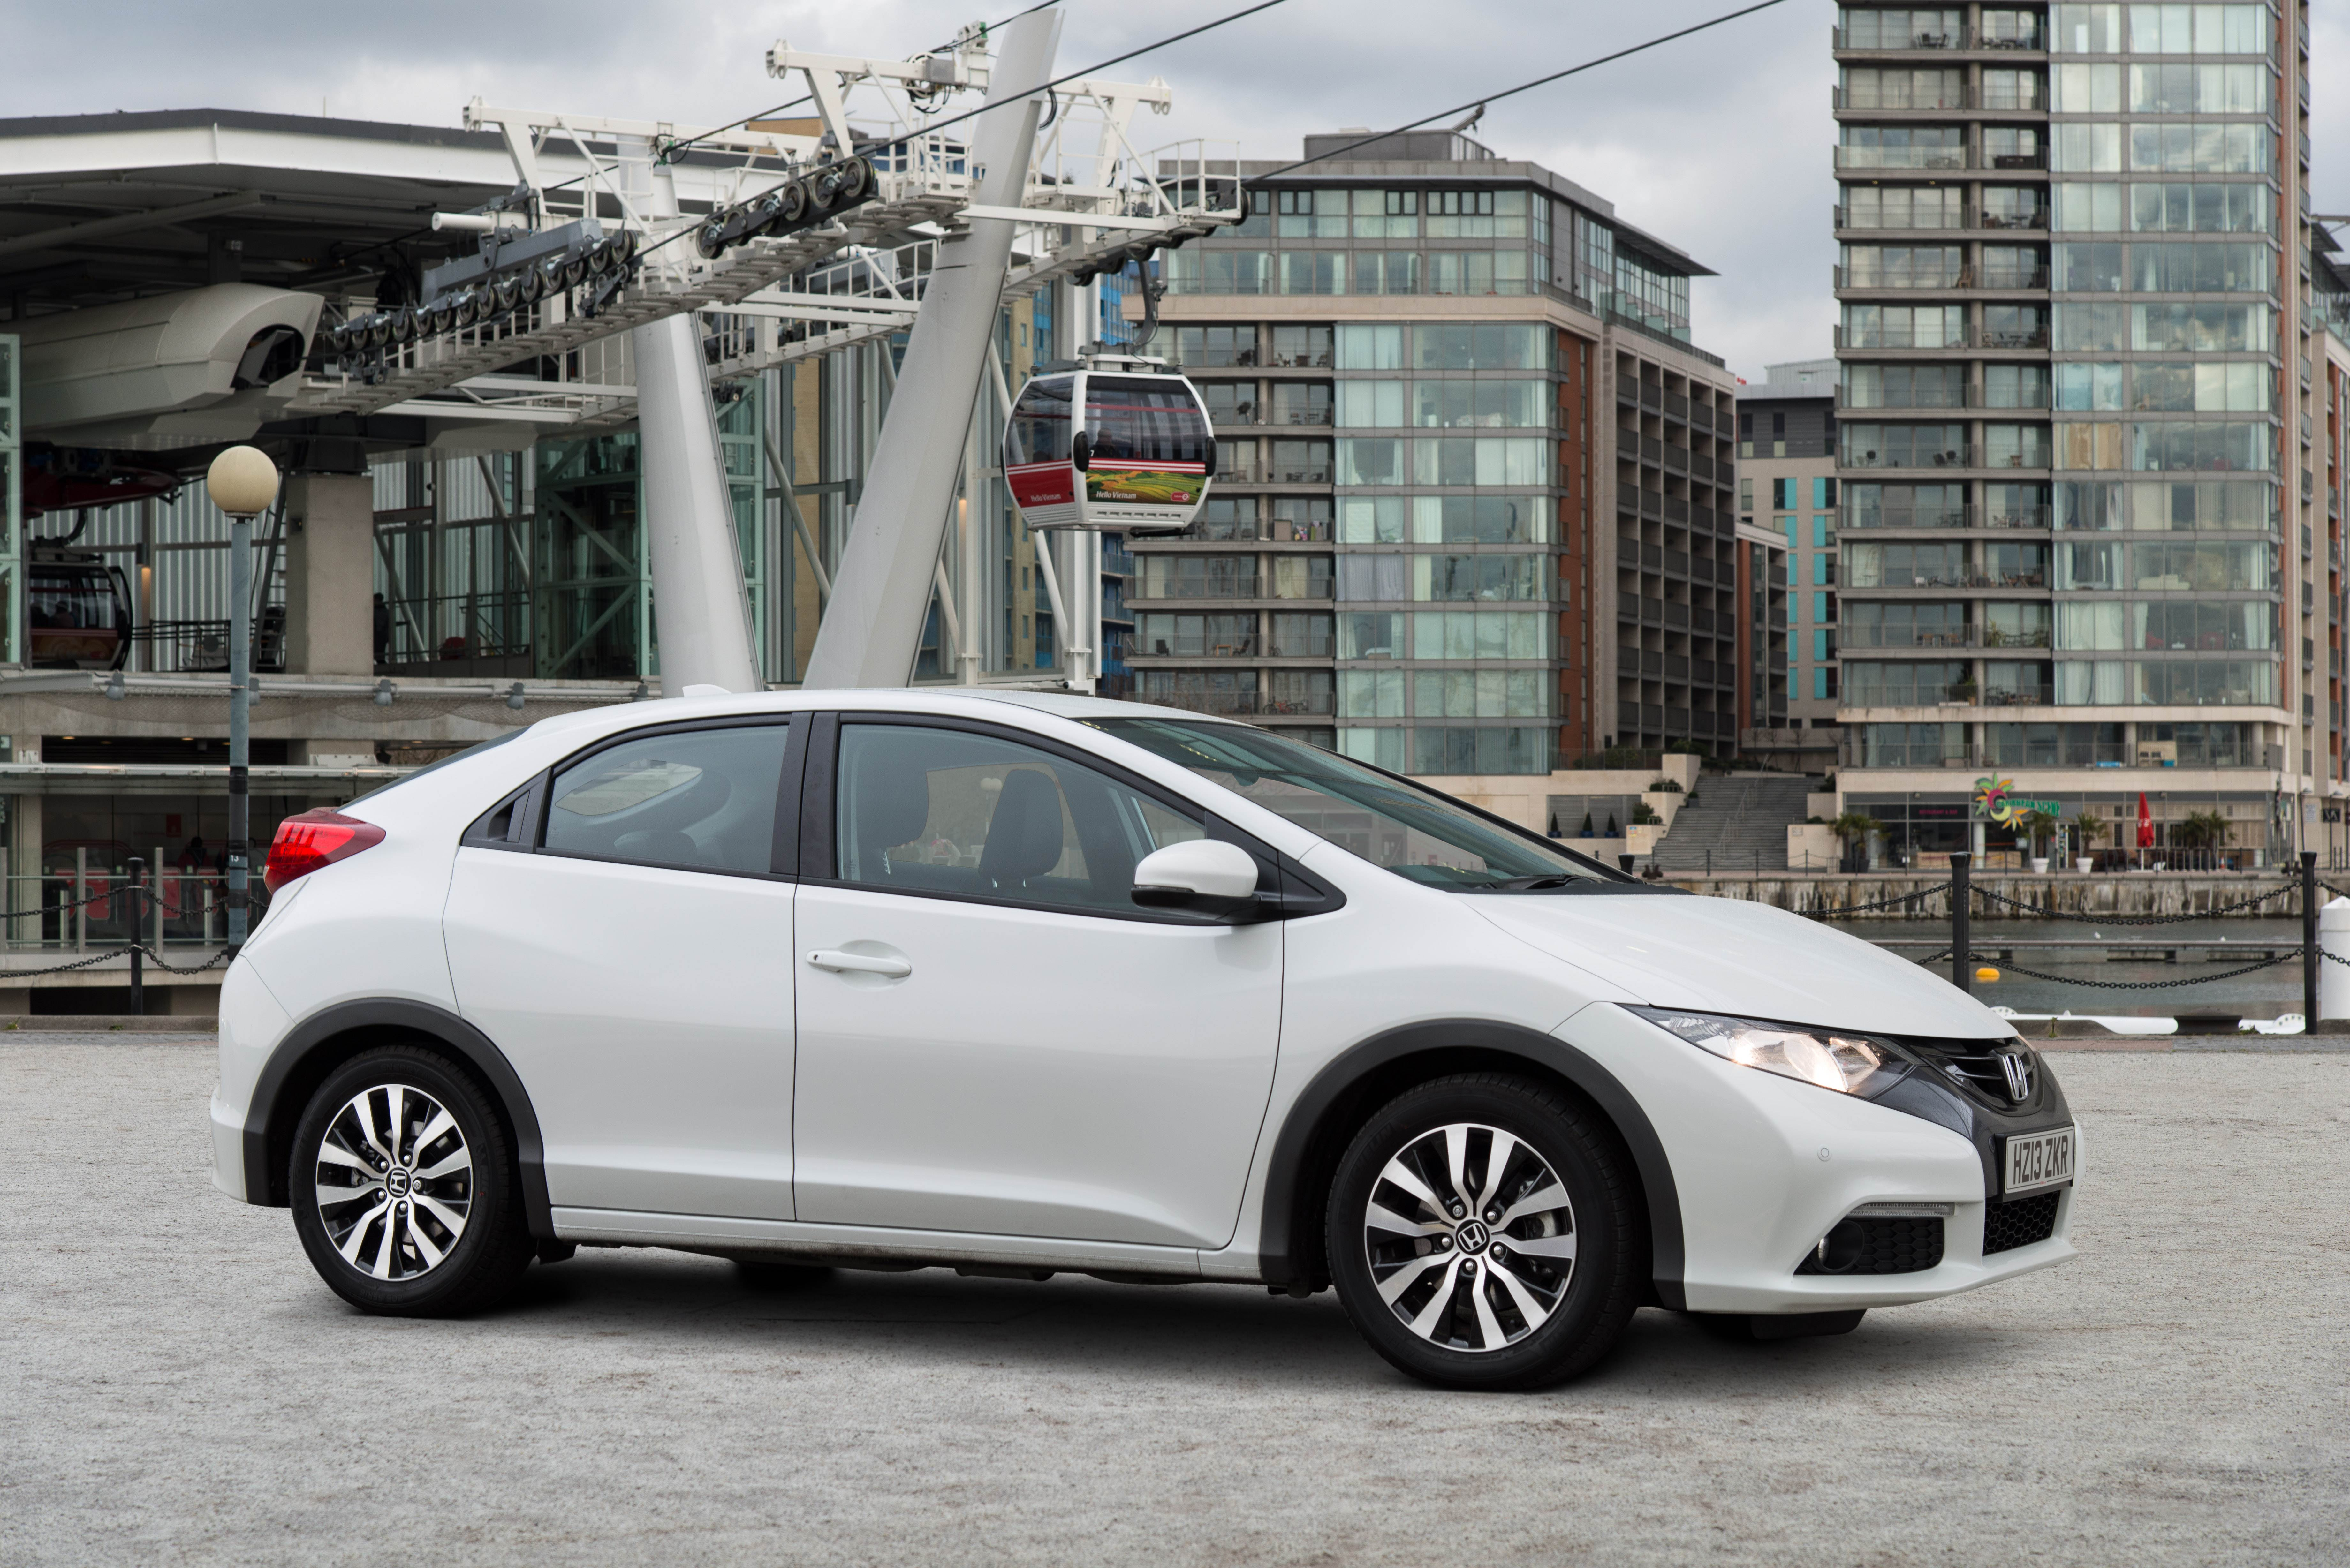 Honda Civic 1.6 i-DTEC